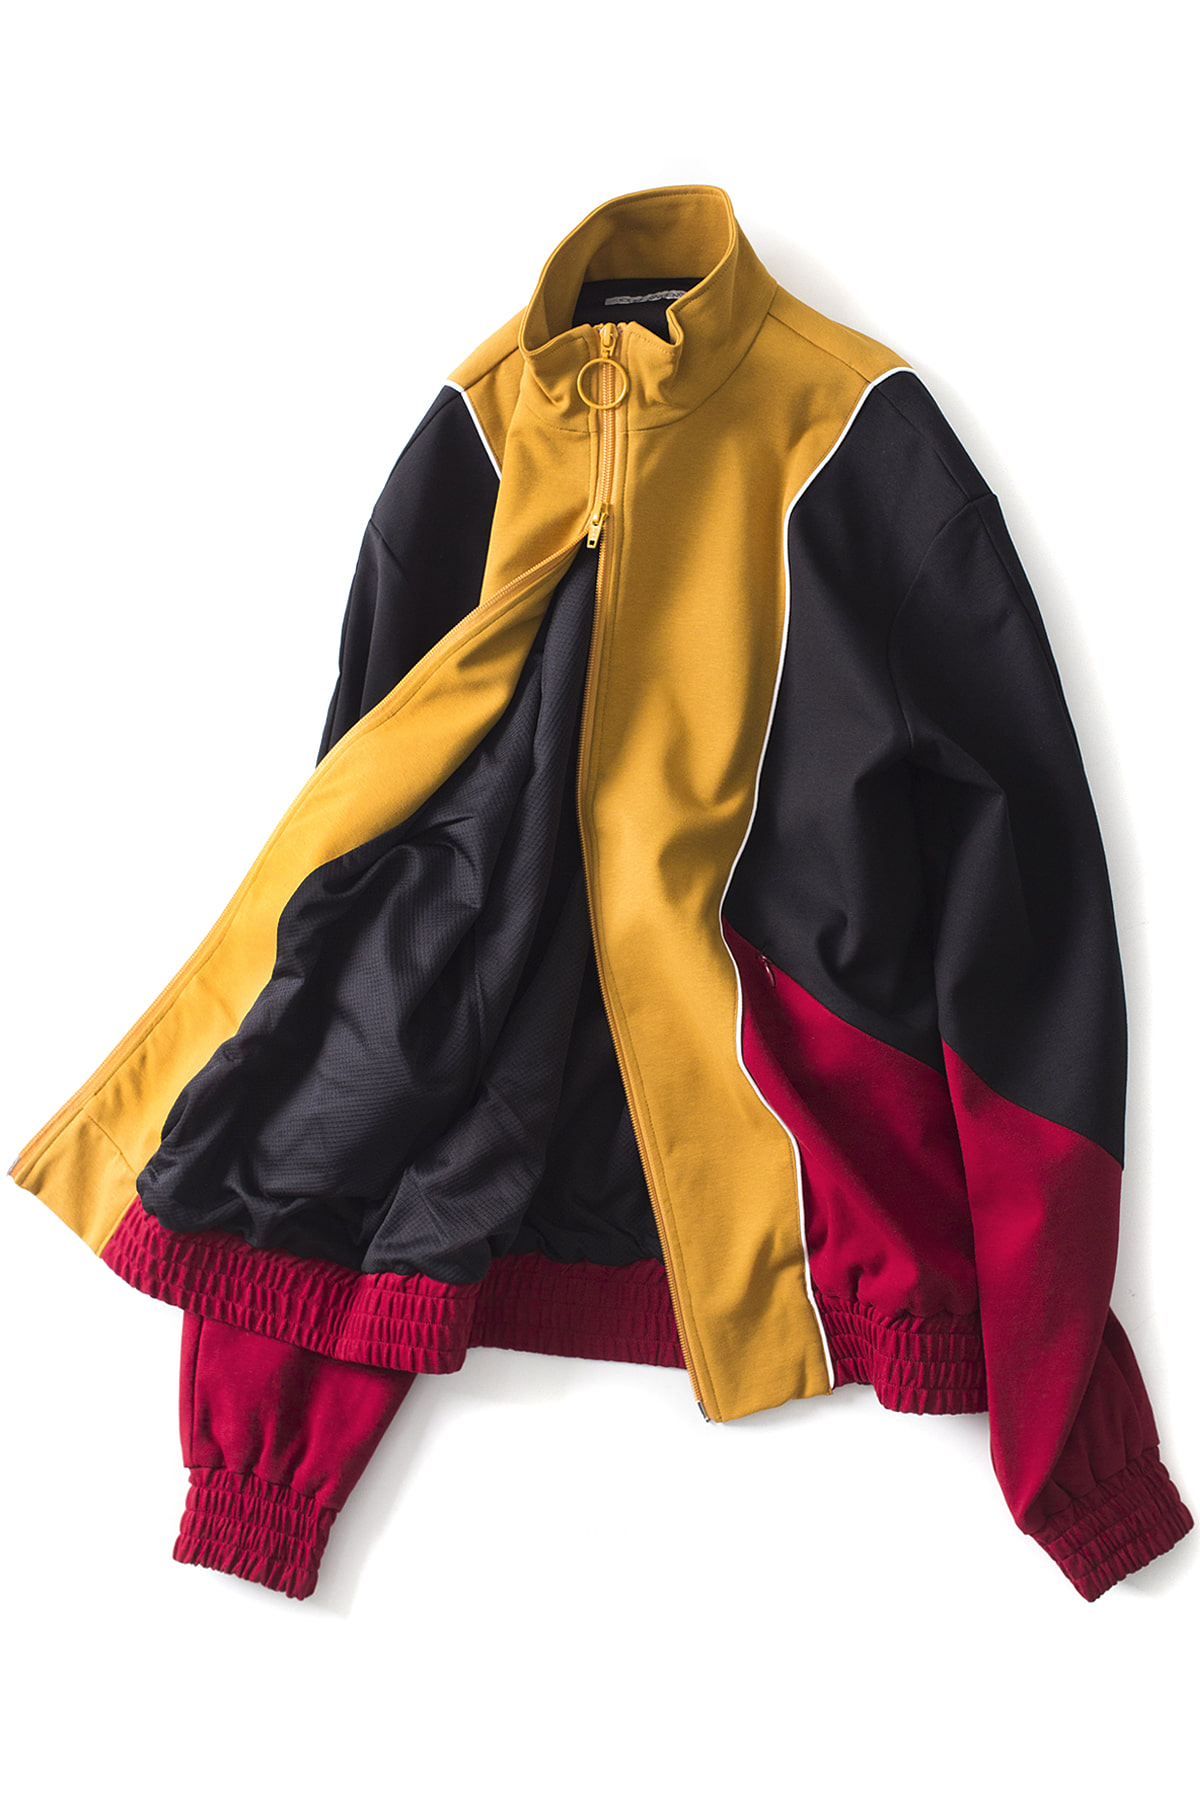 JOHN LAWRENCE SULLIVAN : Colorblock Zip Jacket (Mix2)